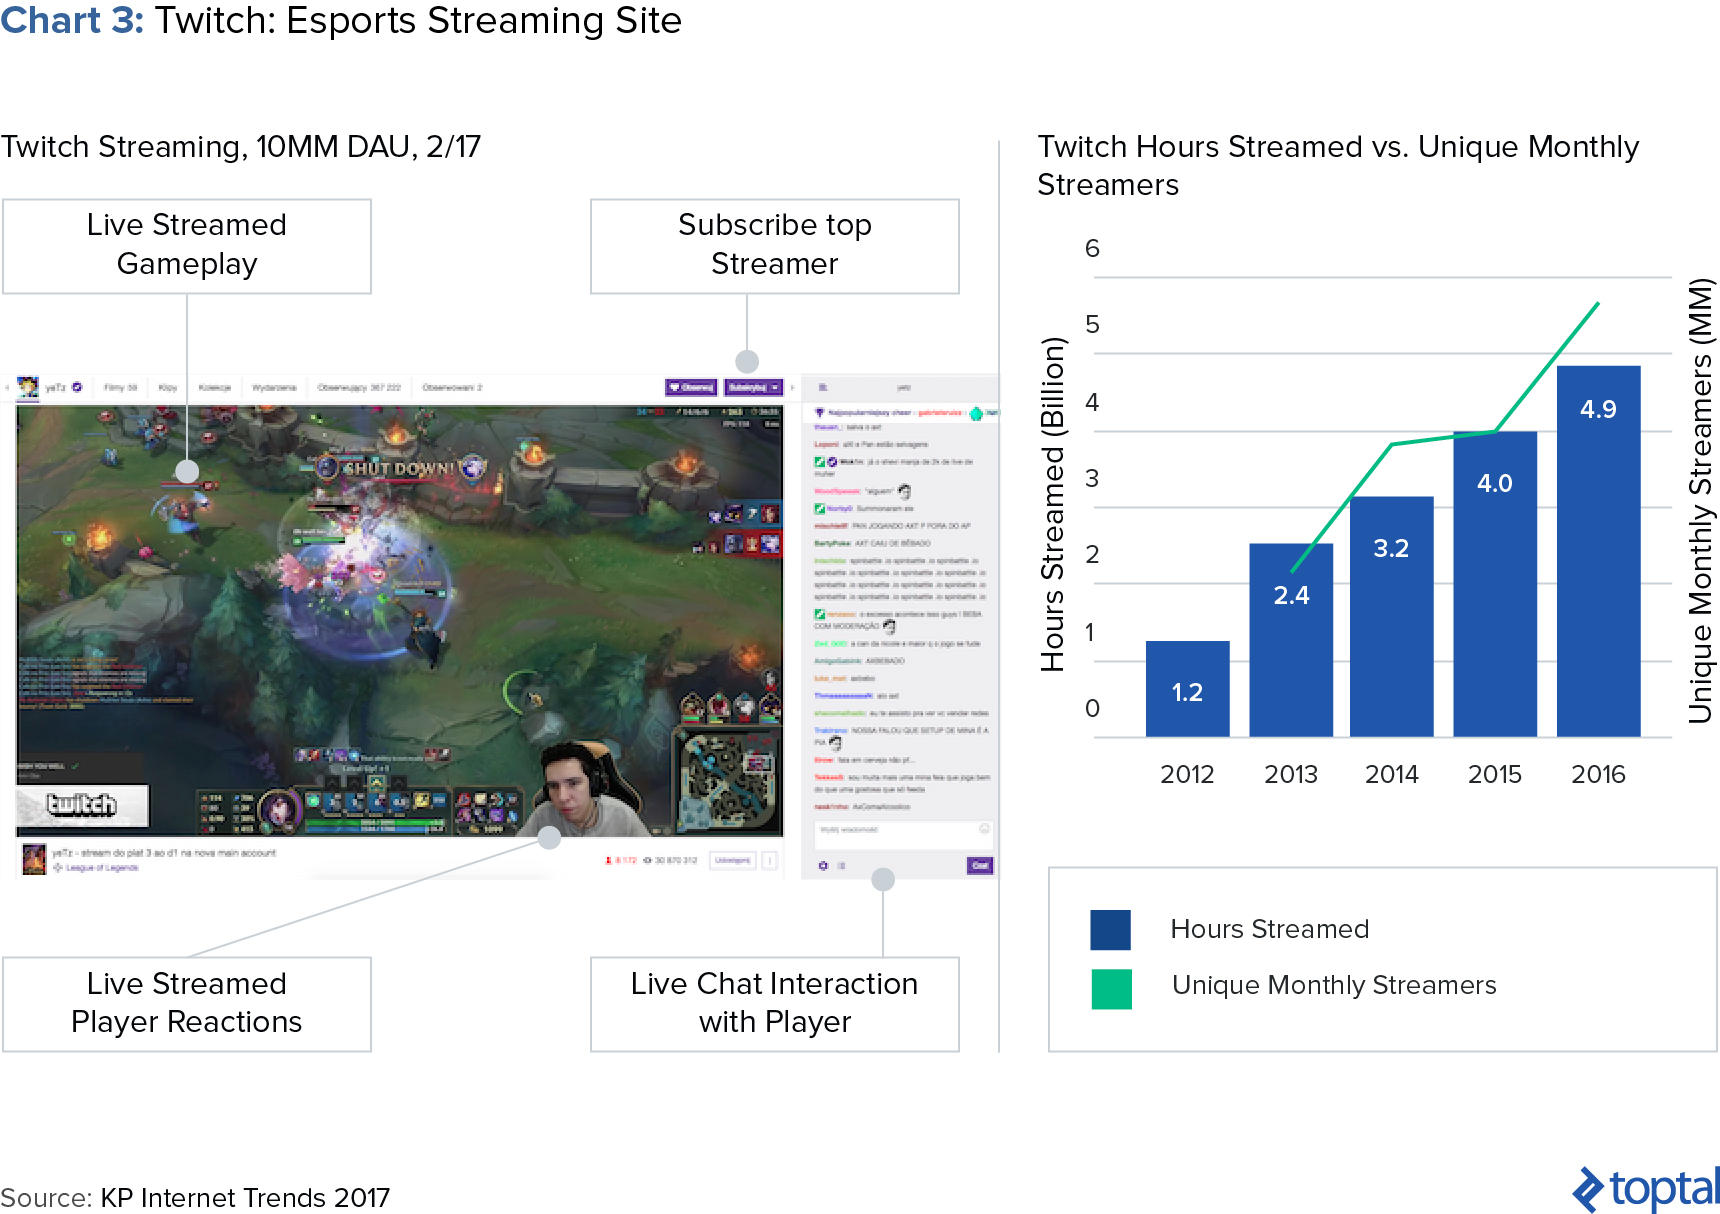 Chart 3: Twitch: Esports Streaming Site